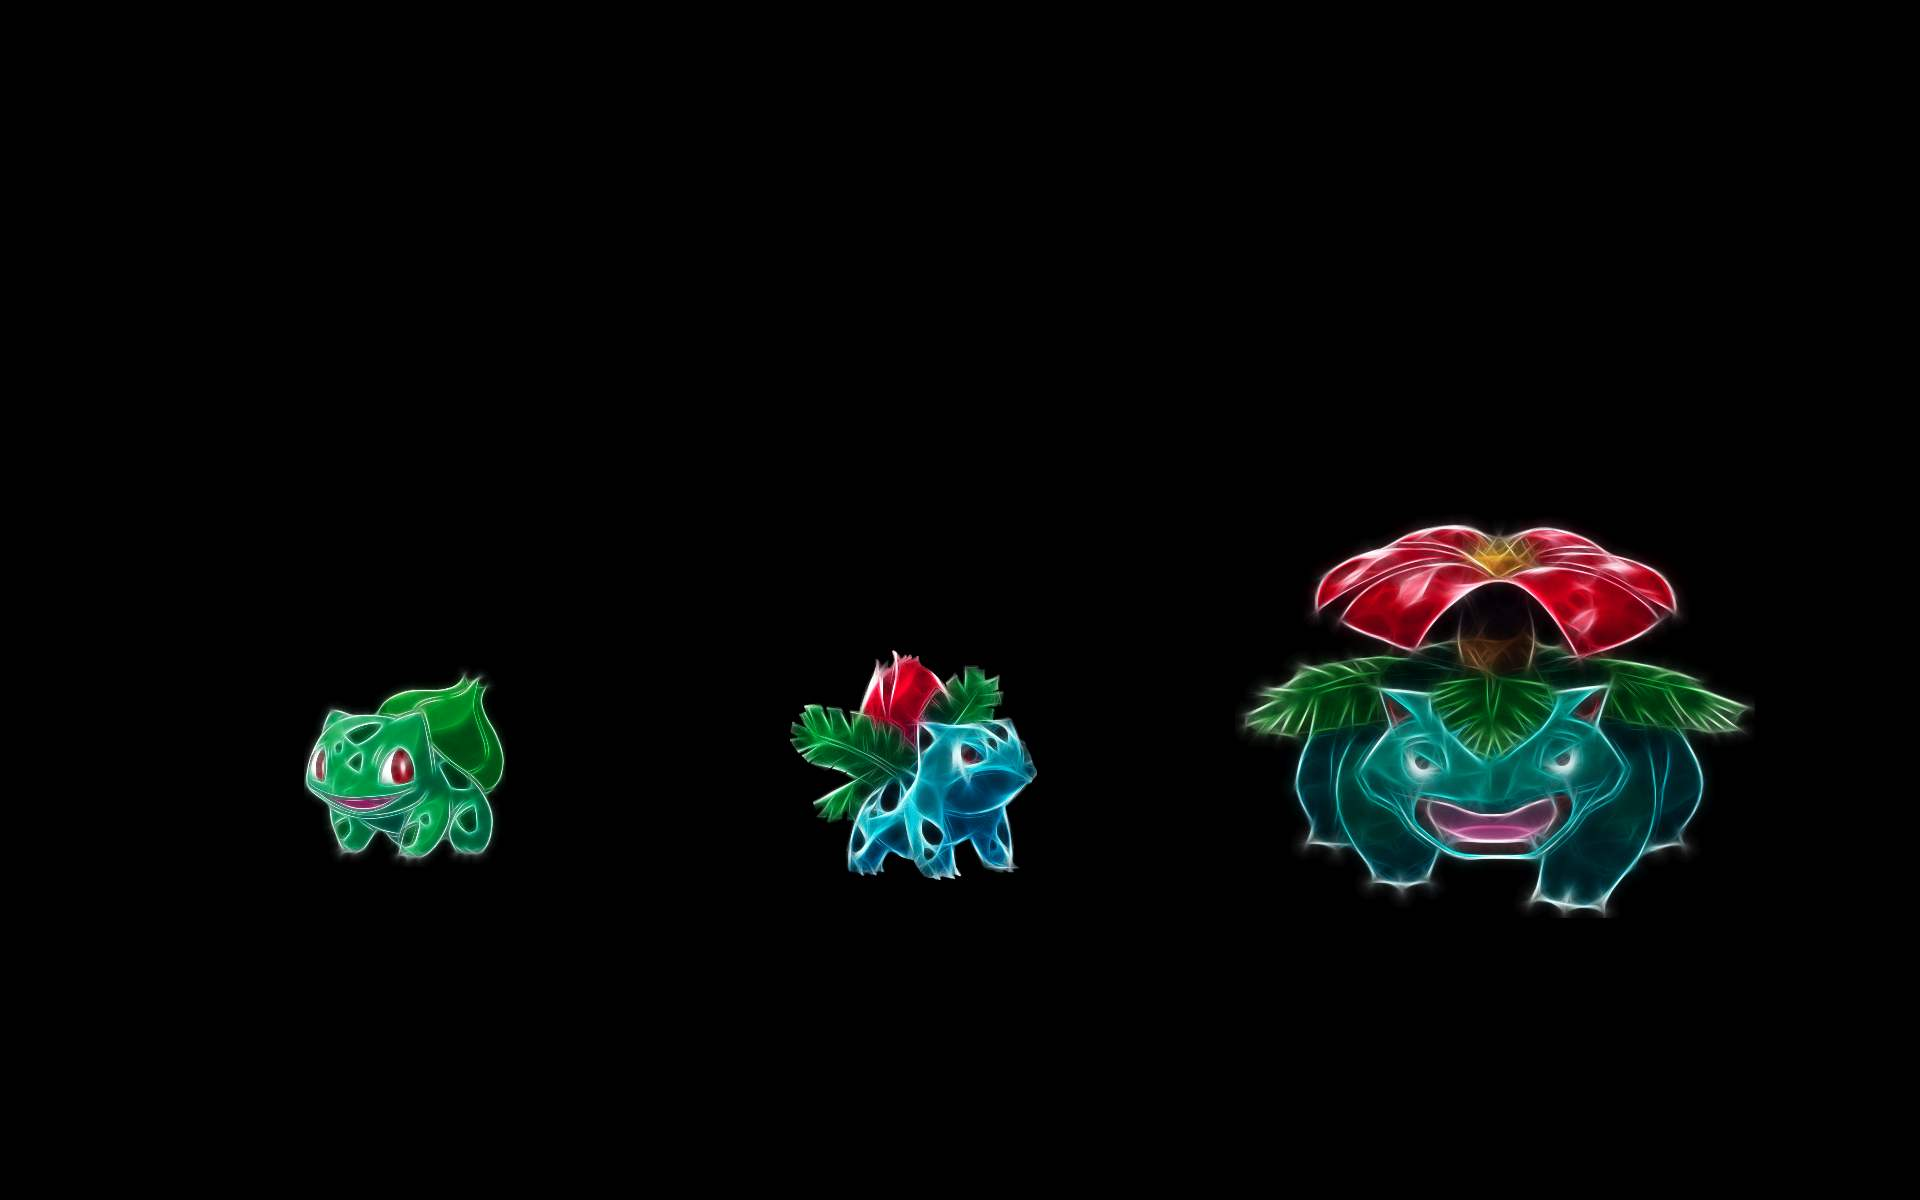 bulbasaur evolution wallpaper images - photo #7